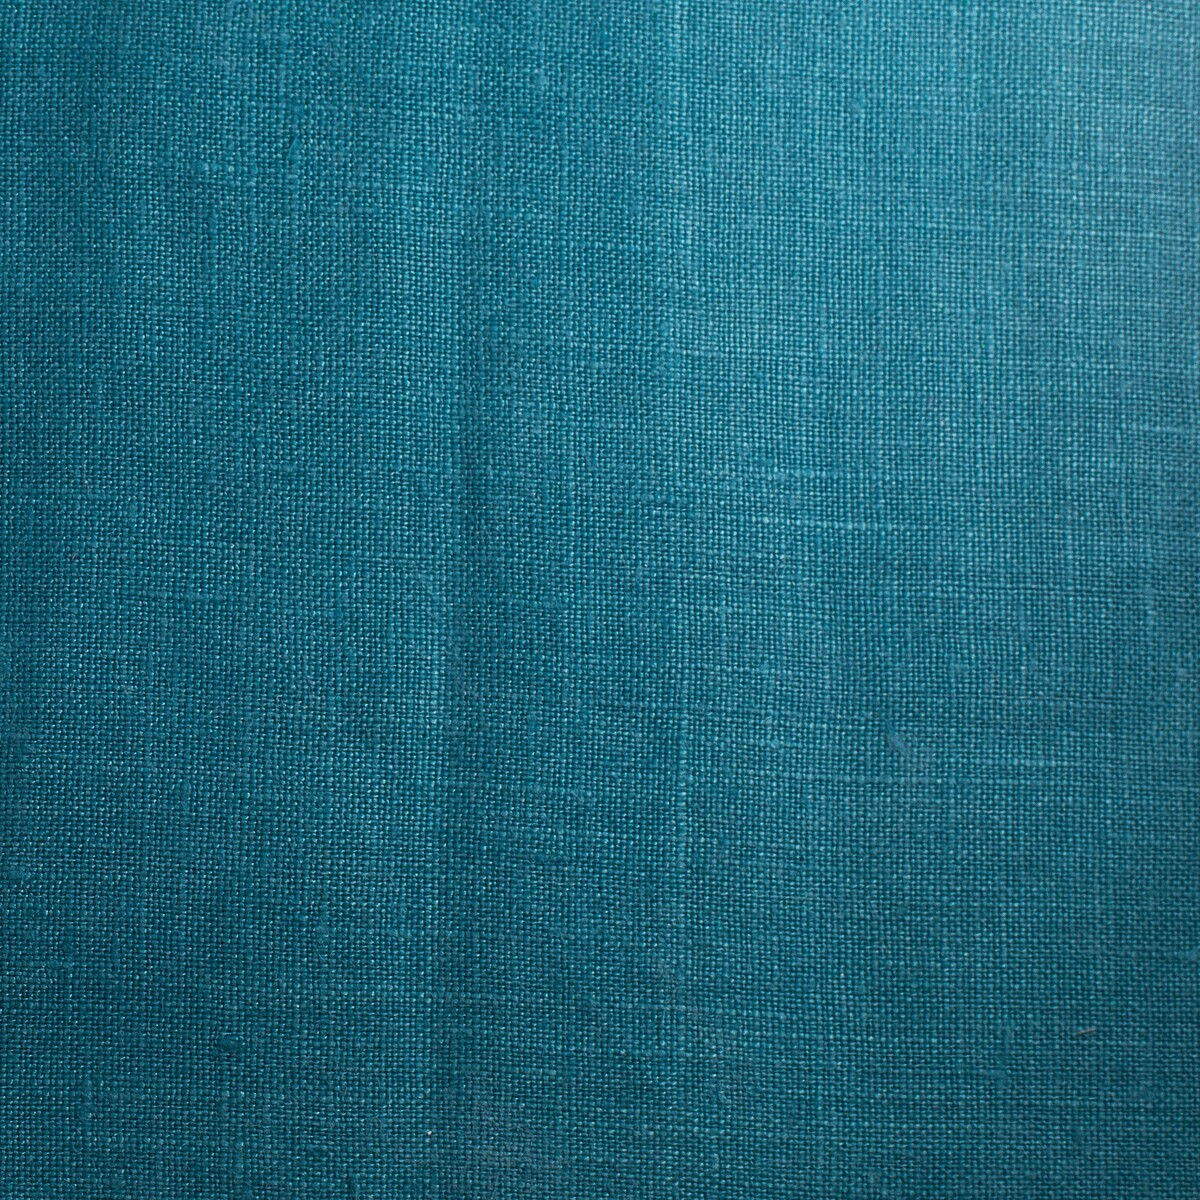 Turquoise 100% Linen